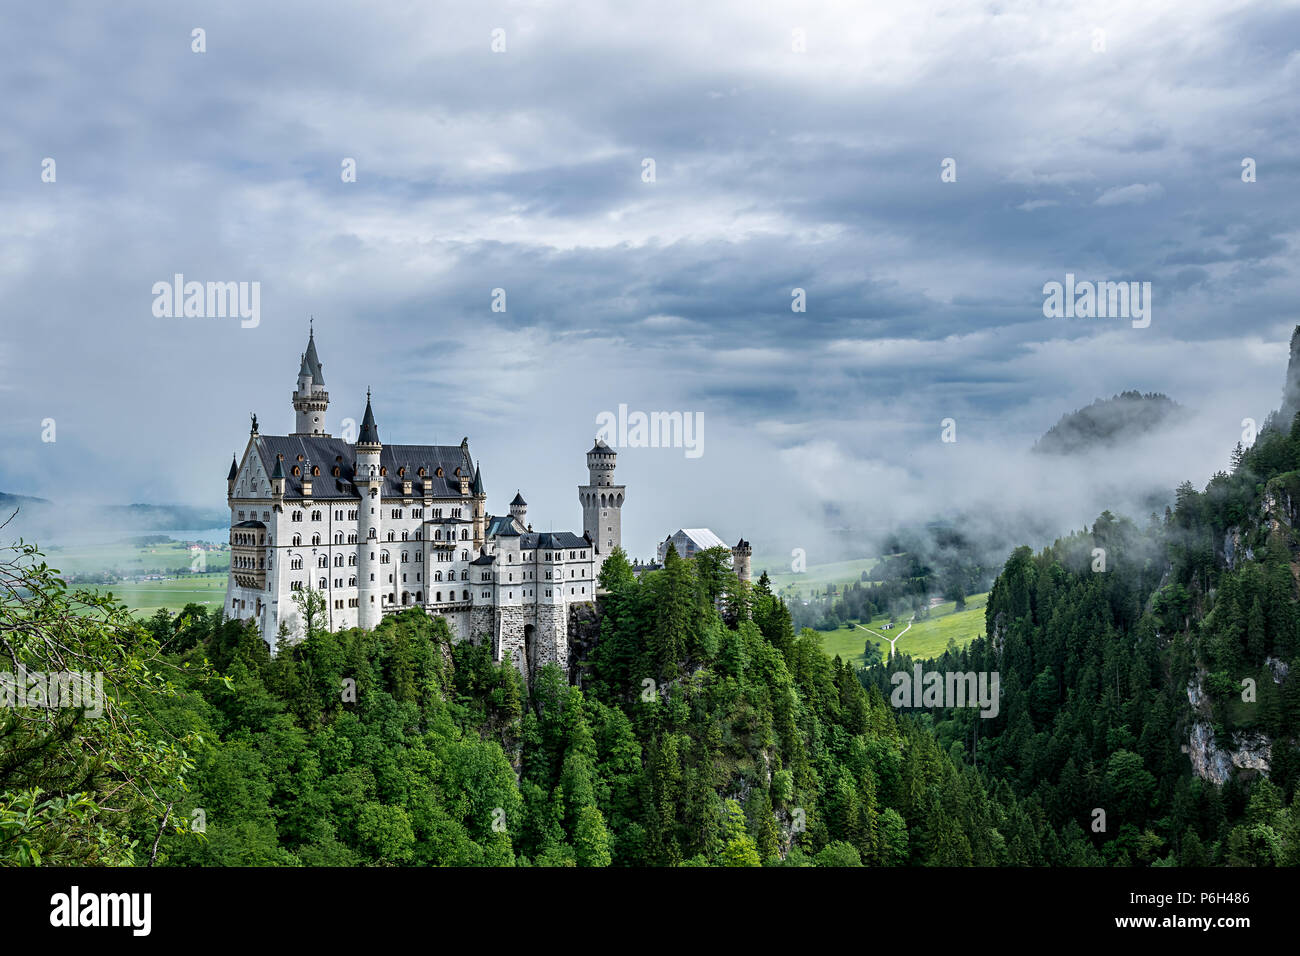 Castel called Neuschwanstein in bavaria with clouds on the sky and a little fog on a sunny day - Stock Image